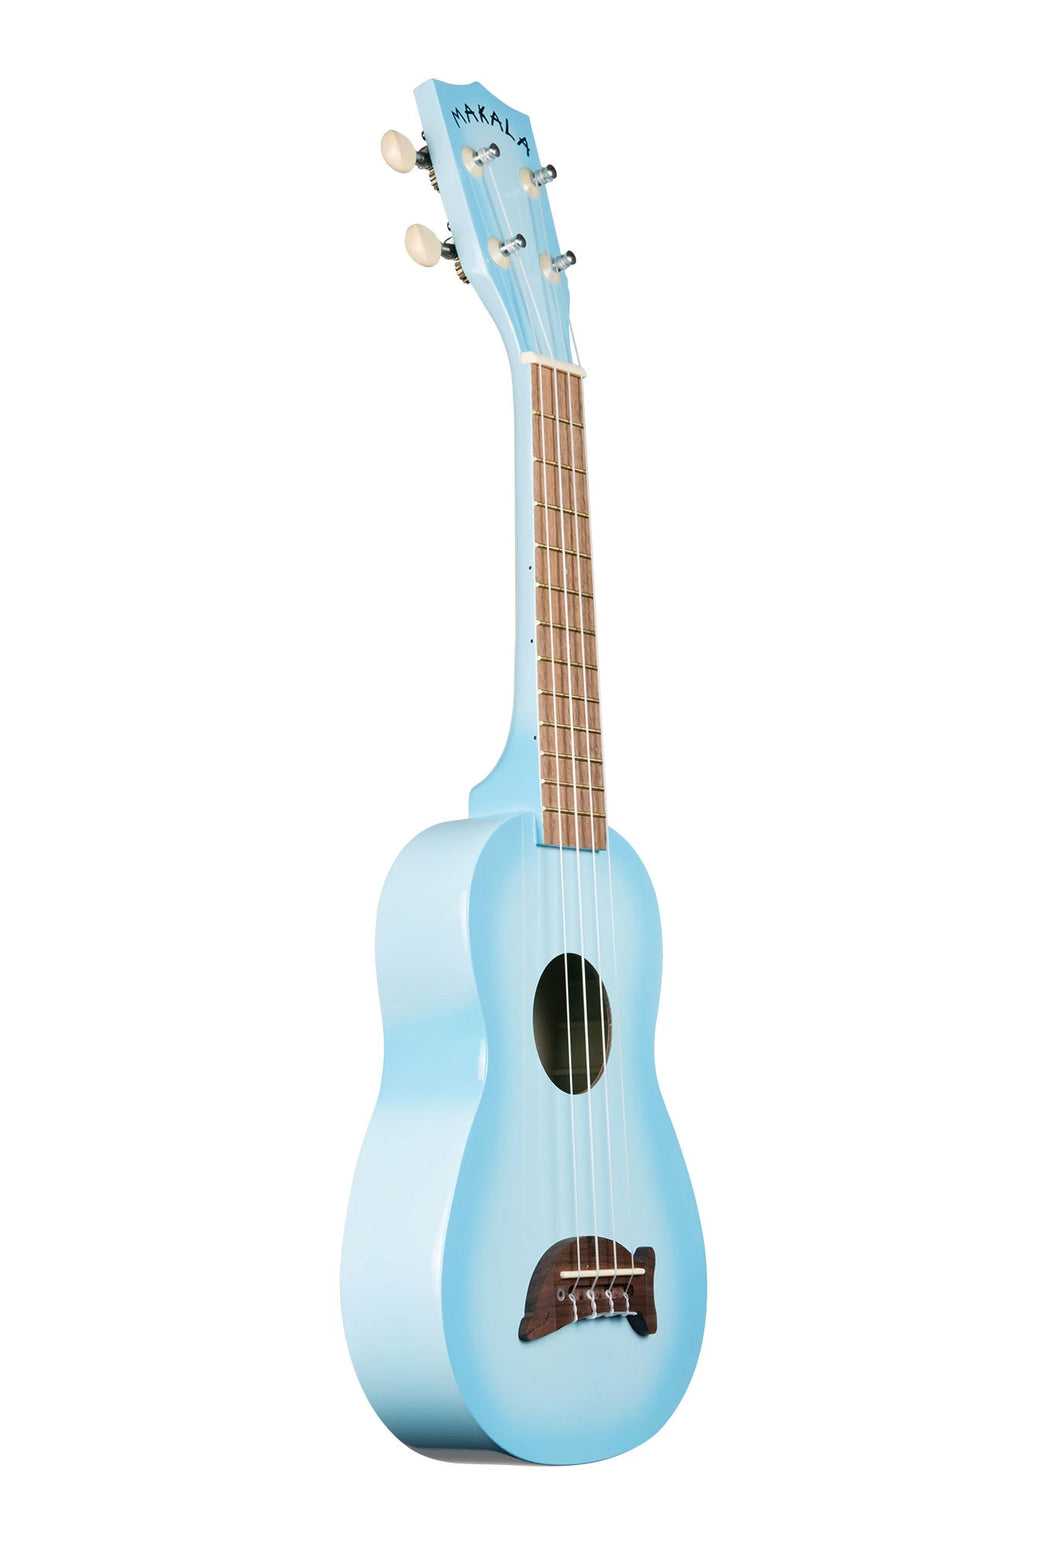 Makala MK-SD/LBLBRST Dolphin Light Blue Burst Gloss Soprano Ukulele